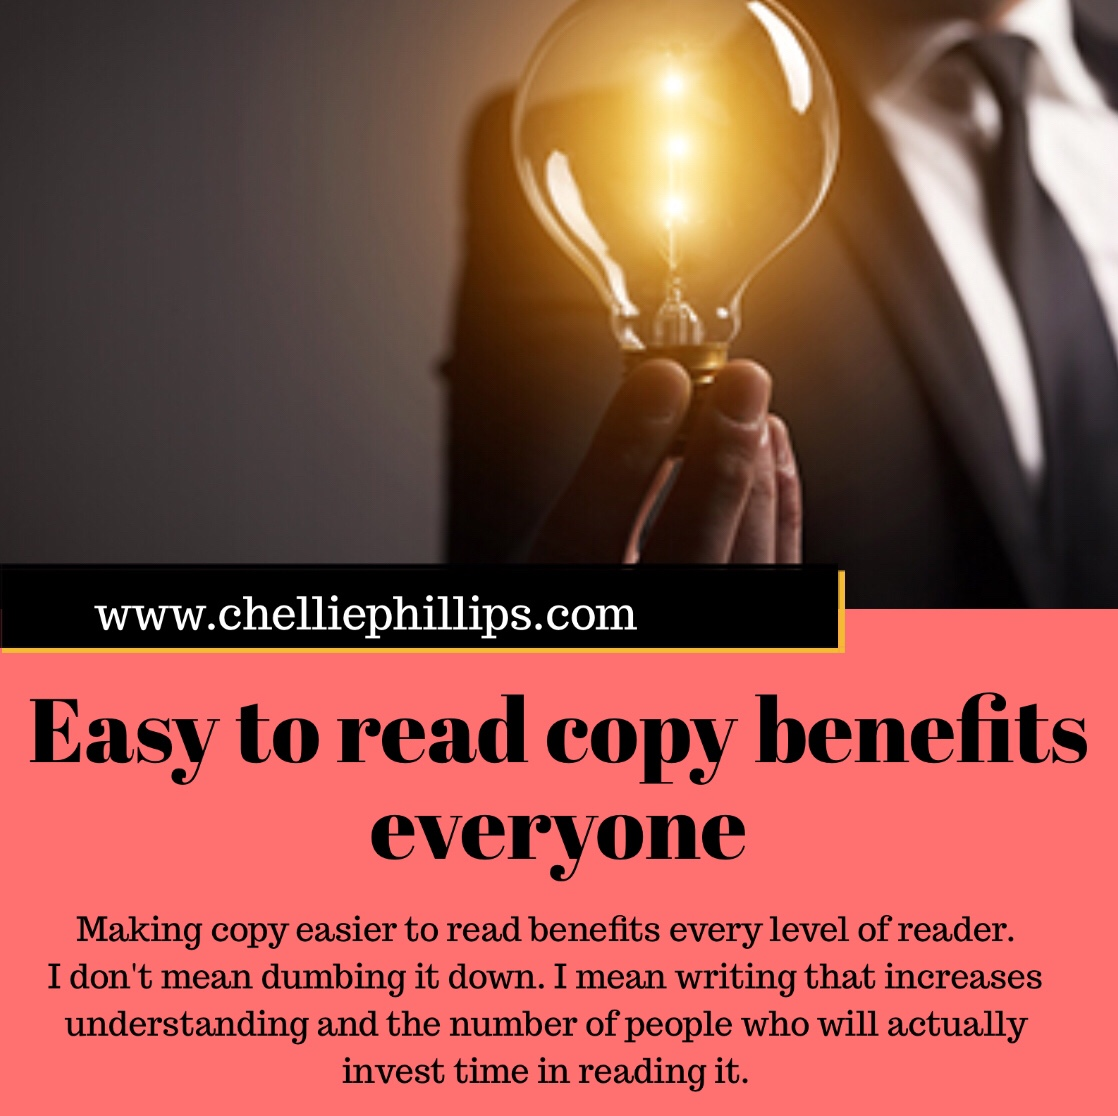 Easy to read copy benefits everyone